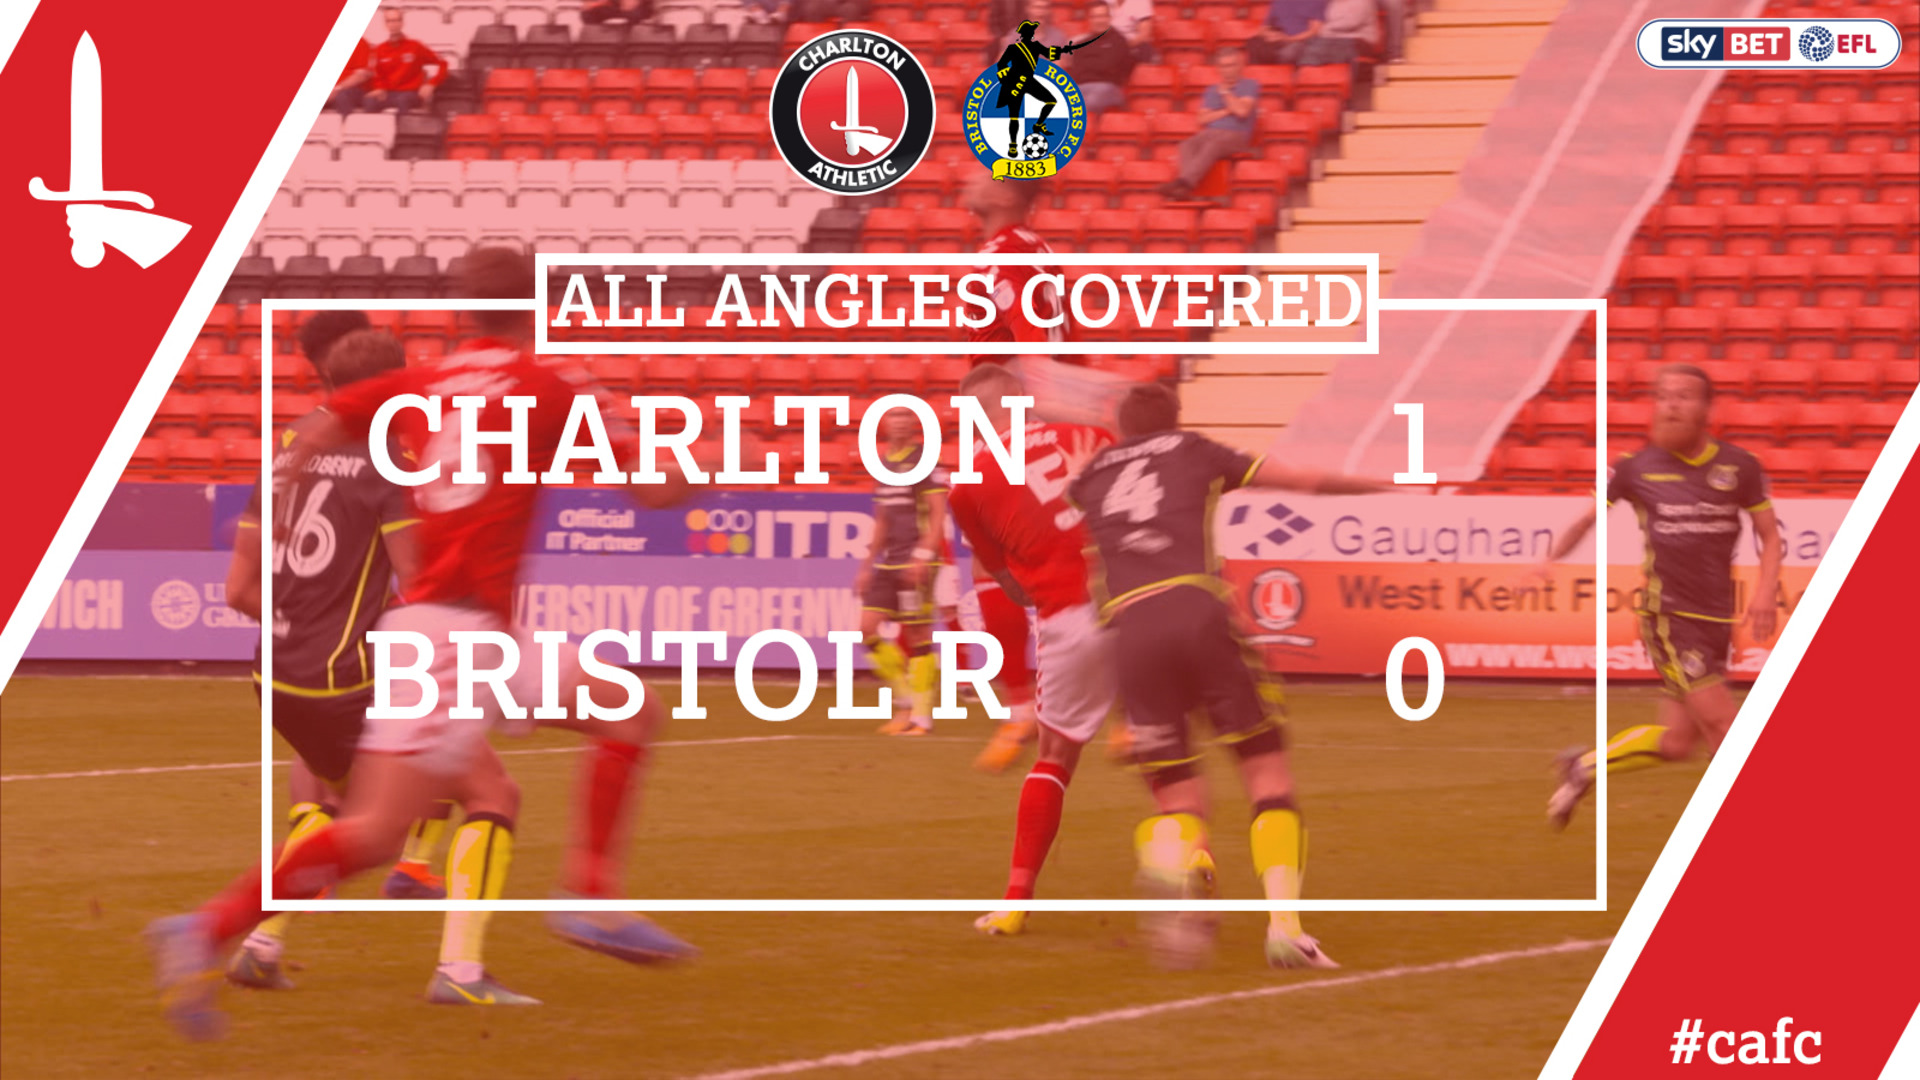 ALL ANGLES COVERED | Charlton 1 Bristol Rovers 1 (Aug 2017)